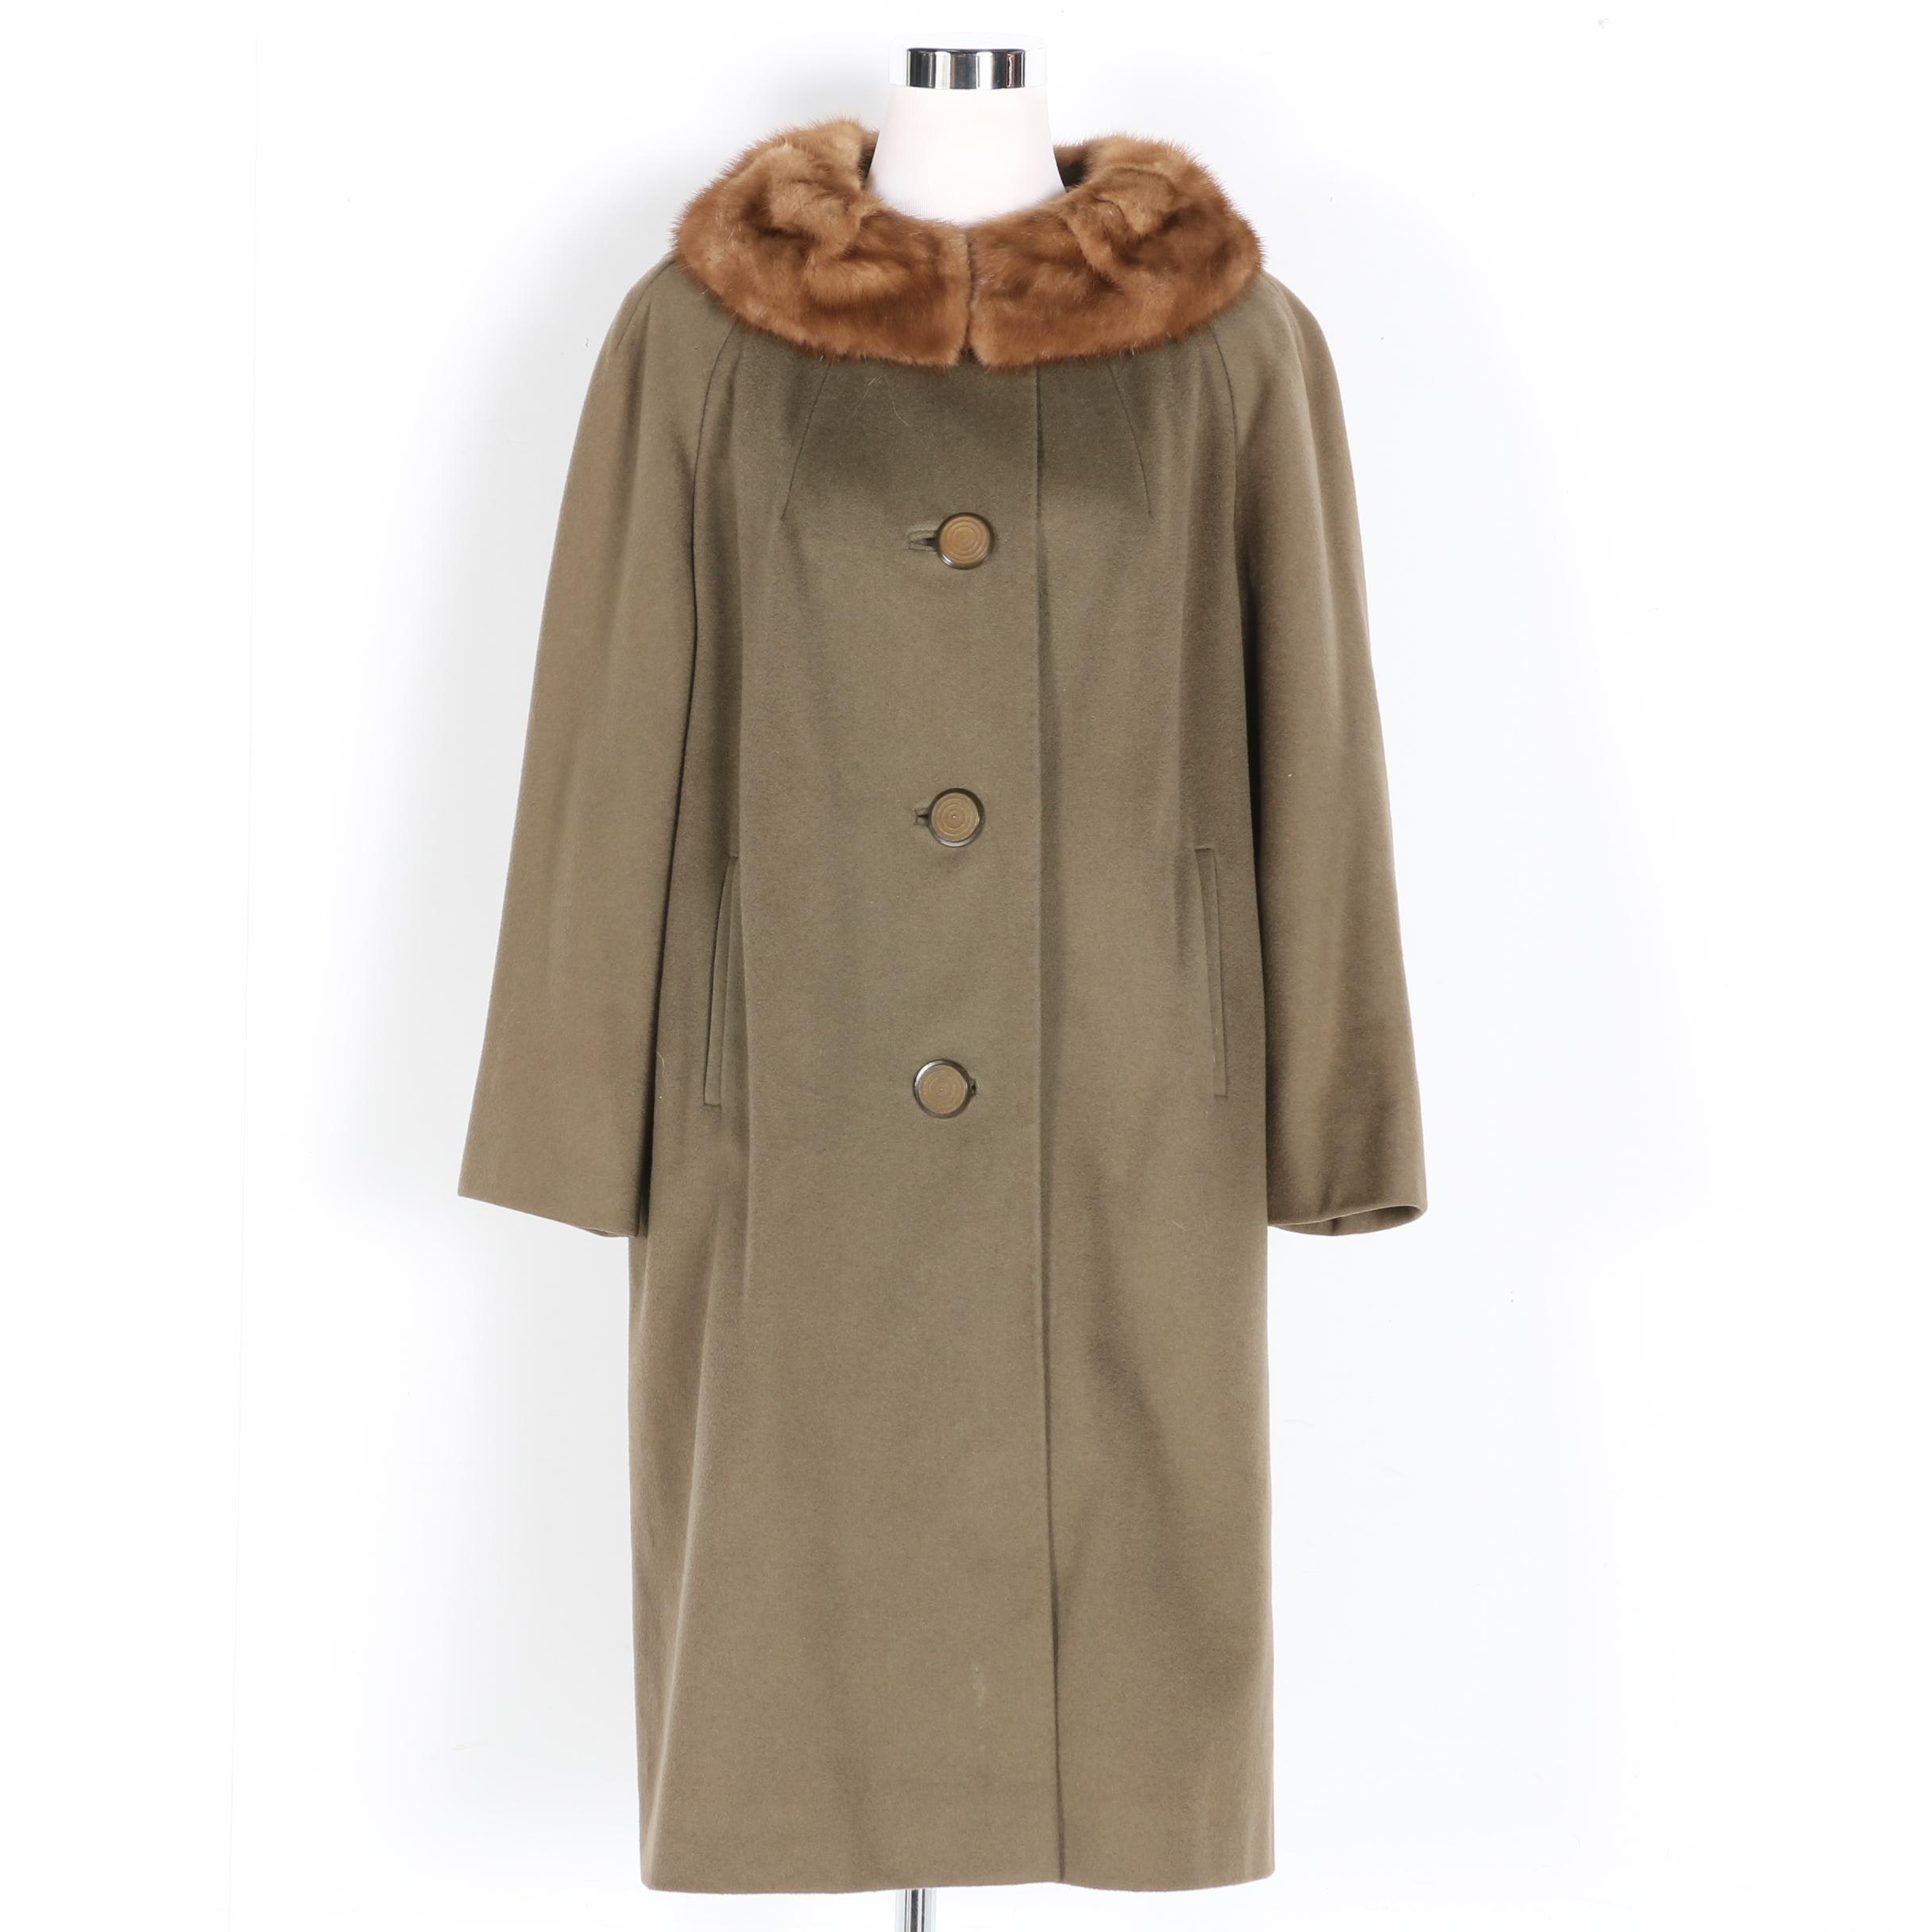 Circa 1960s Wool Coat With Mink Collar by Betty Rose